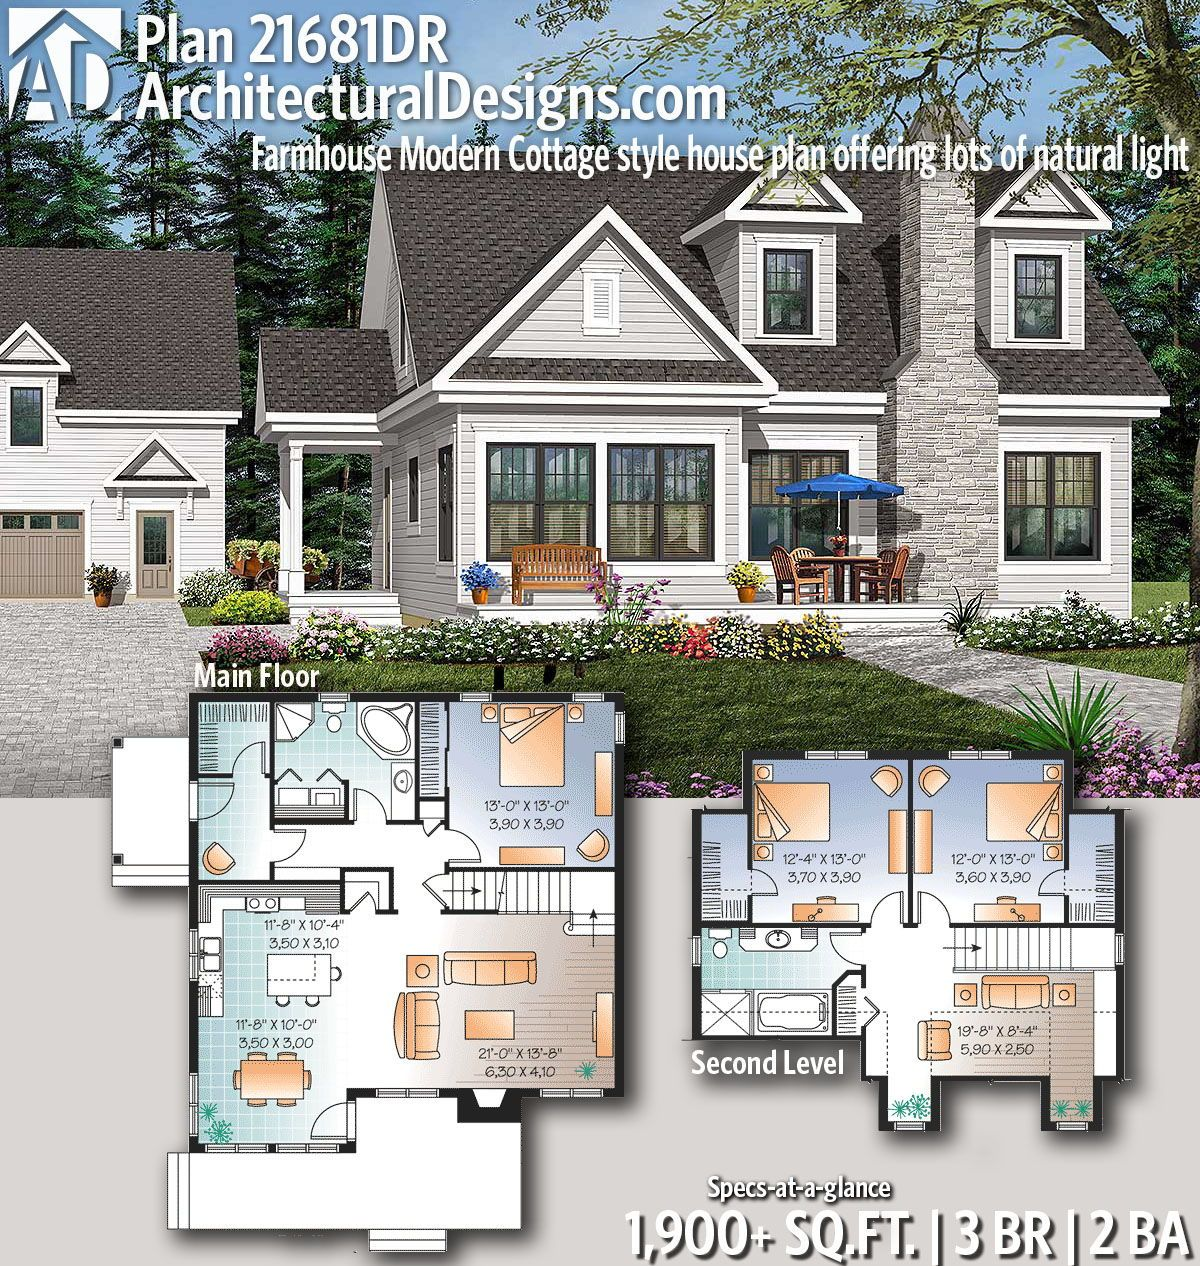 Plan 21681dr Farmhouse Modern Cottage Style House Plan Offering Lots Of Natural Light Cottage Style House Plans Farmhouse Plans Cottage Style Homes